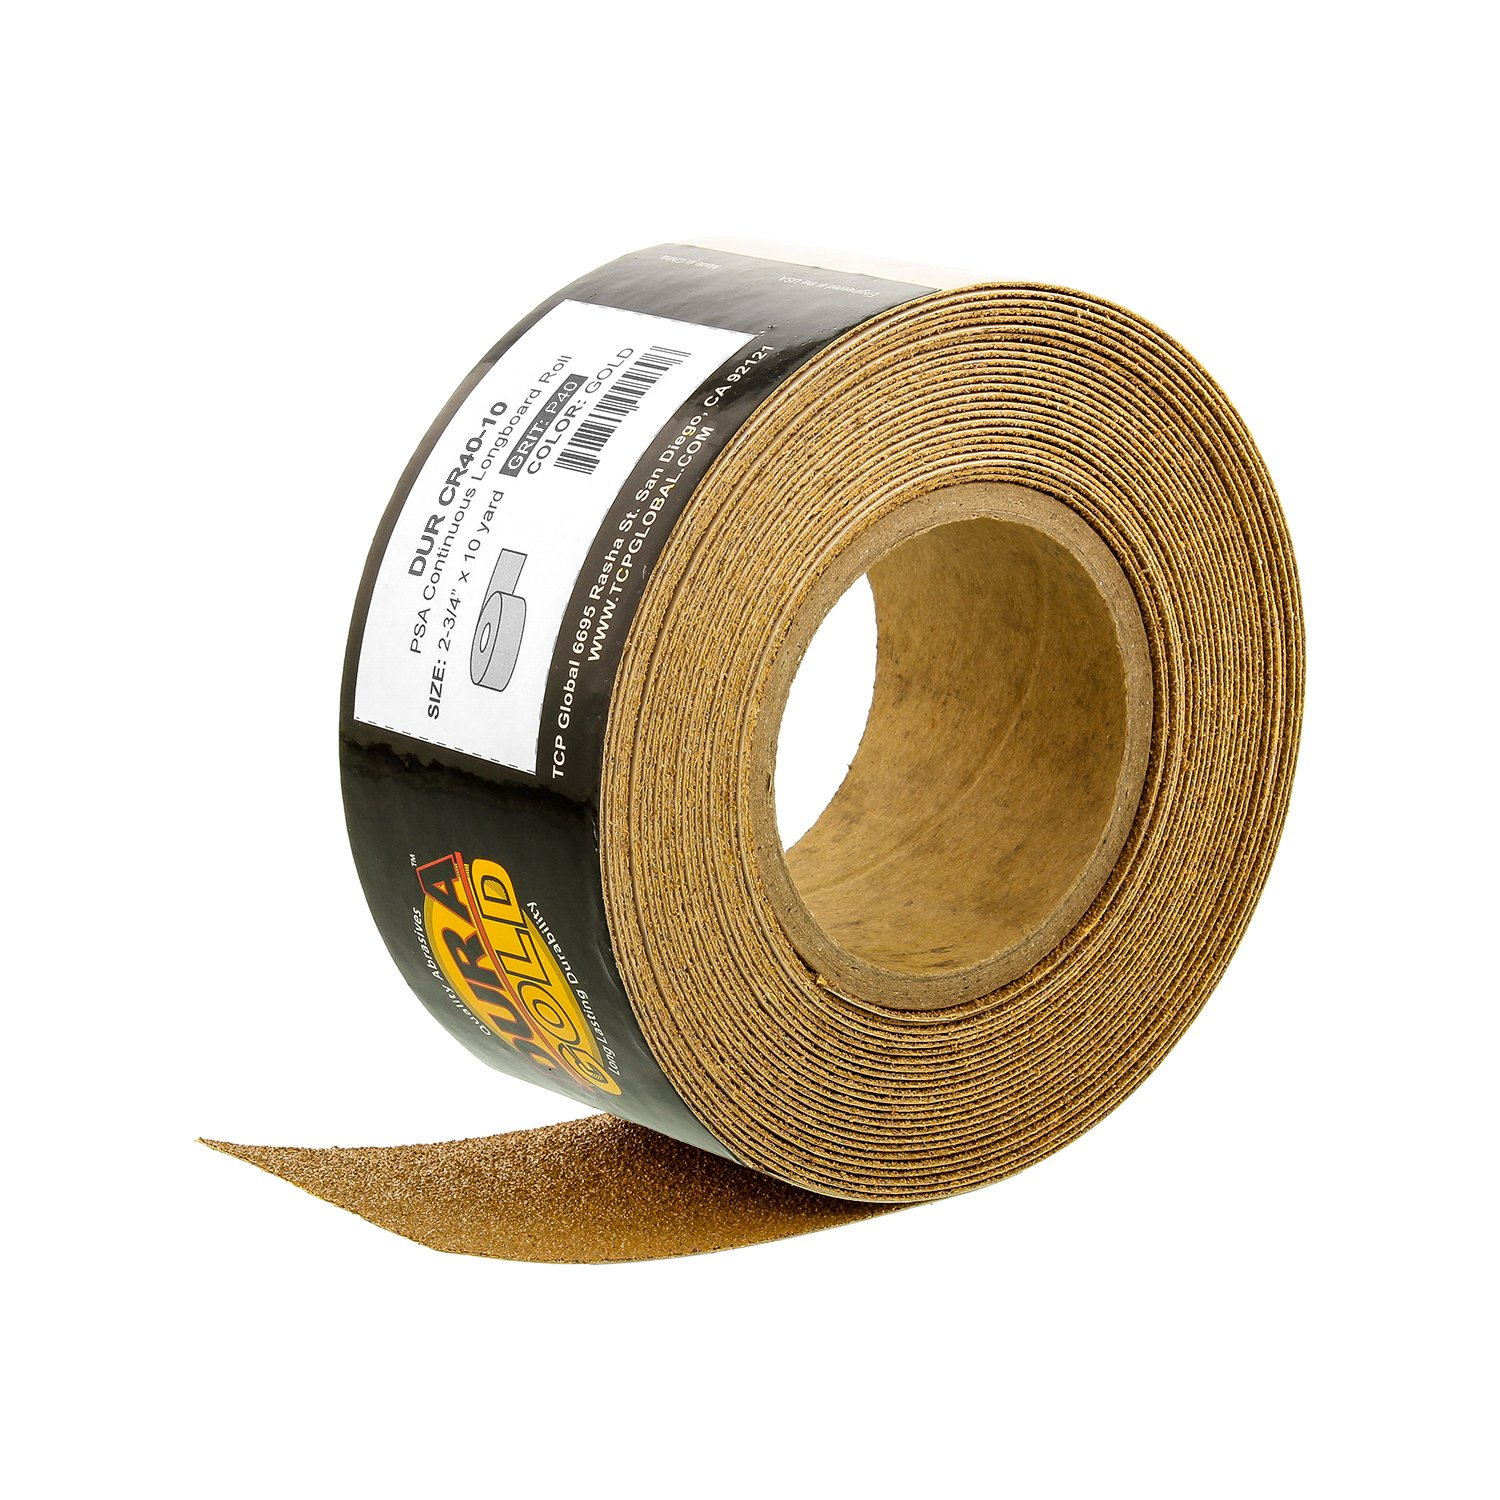 Dura-Gold - Premium - 40 Grit Gold - Longboard Continuous Roll 10 Yards long by 2-3/4'' wide PSA Self Adhesive Stickyback Longboard Sandpaper for Automotive and Woodworking